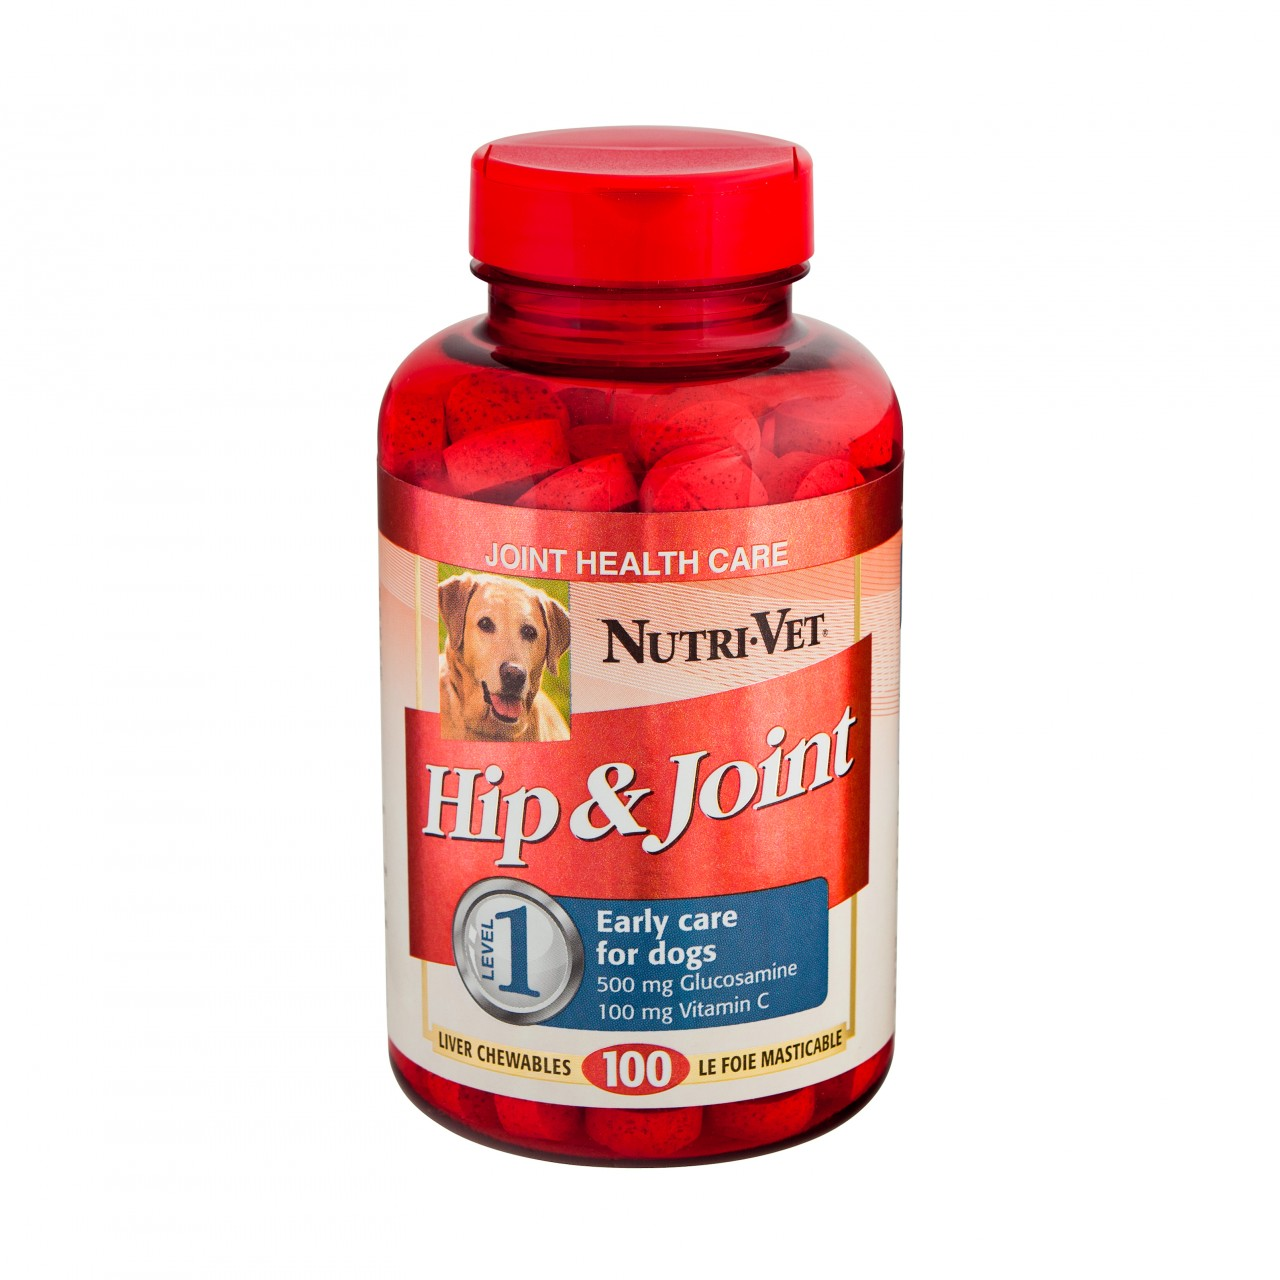 Nutri-Vet Level 1 Hip & Joint Chewable